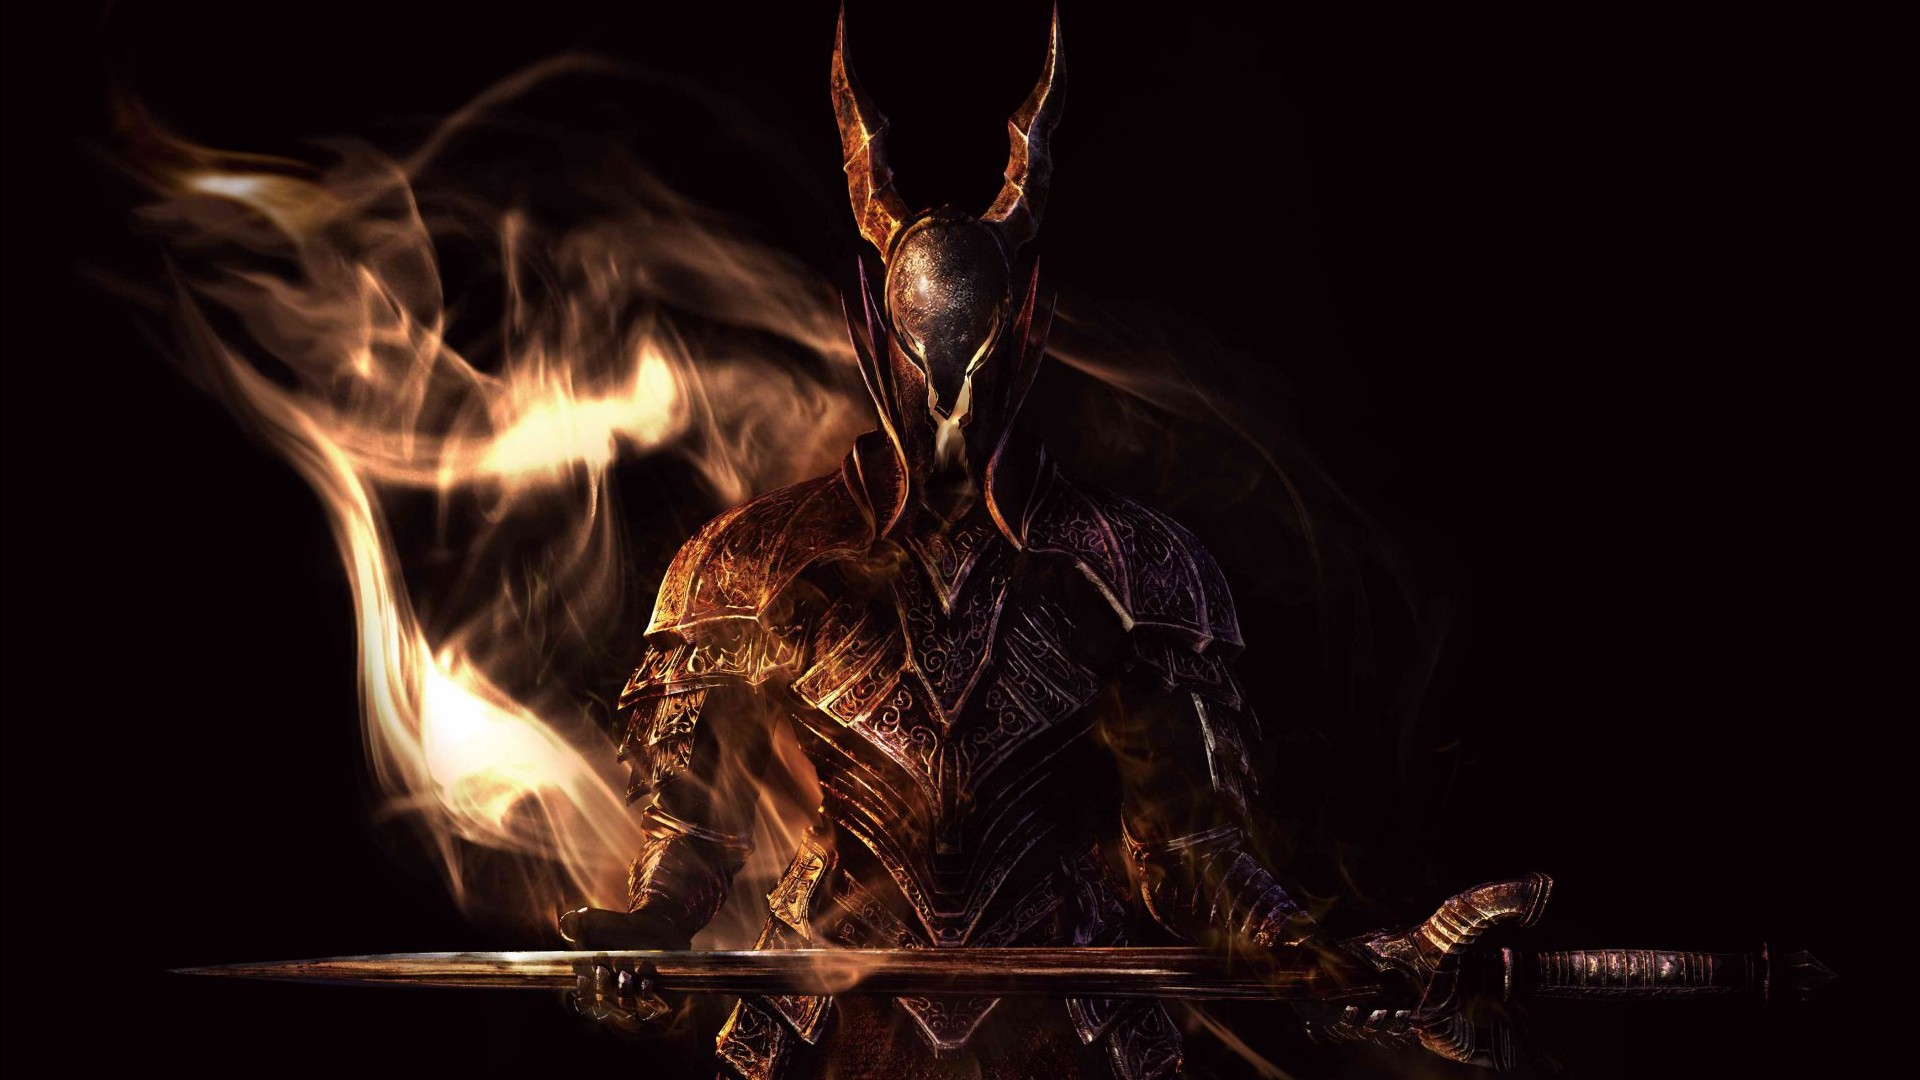 235 Dark Souls wallpapers for your PC, mobile phone, iPad, iPhone.